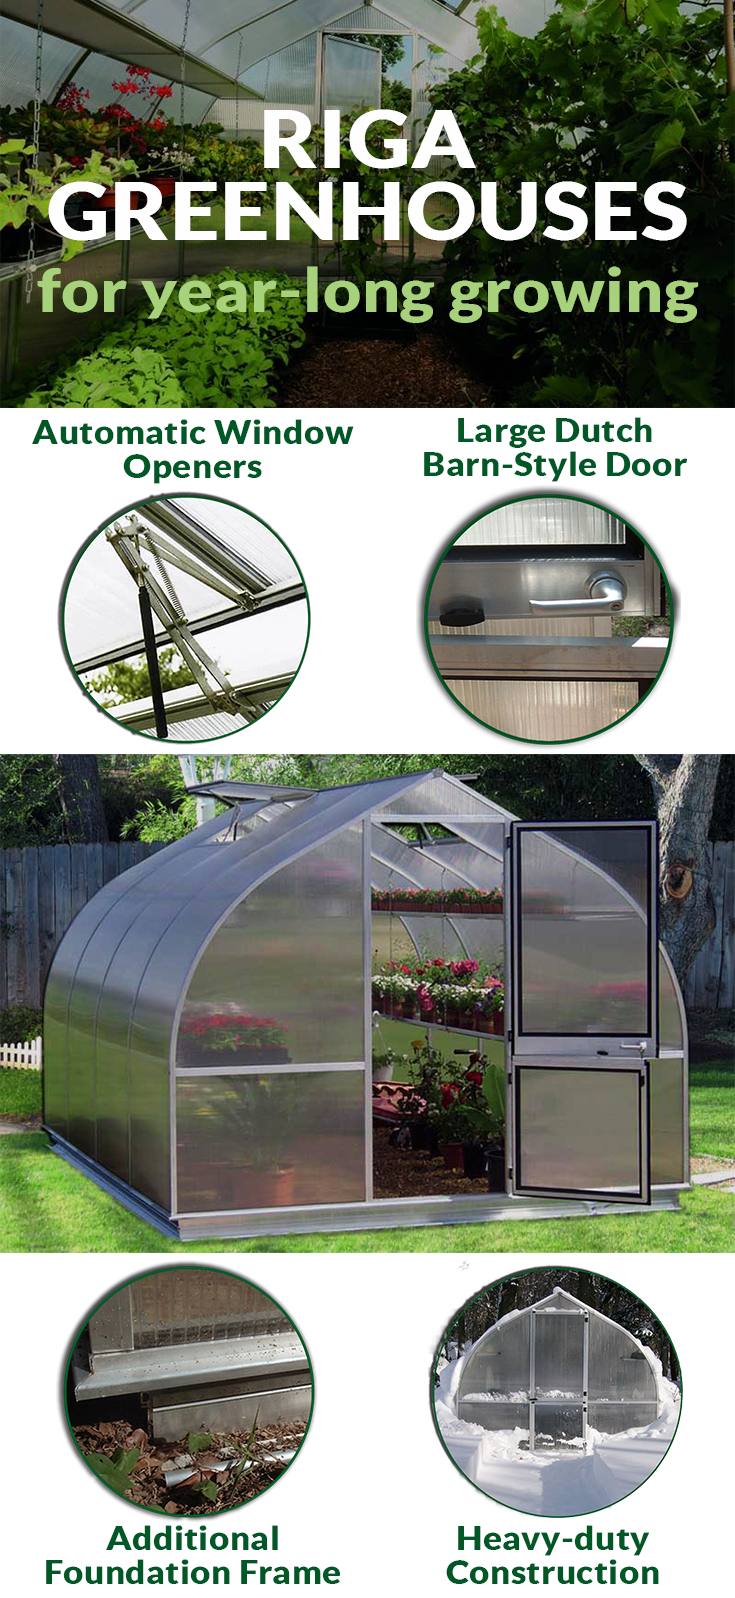 Graphic showing the inside and outside of the Riga Greenhouse Kit from Hoklartherm with little round images about the features.